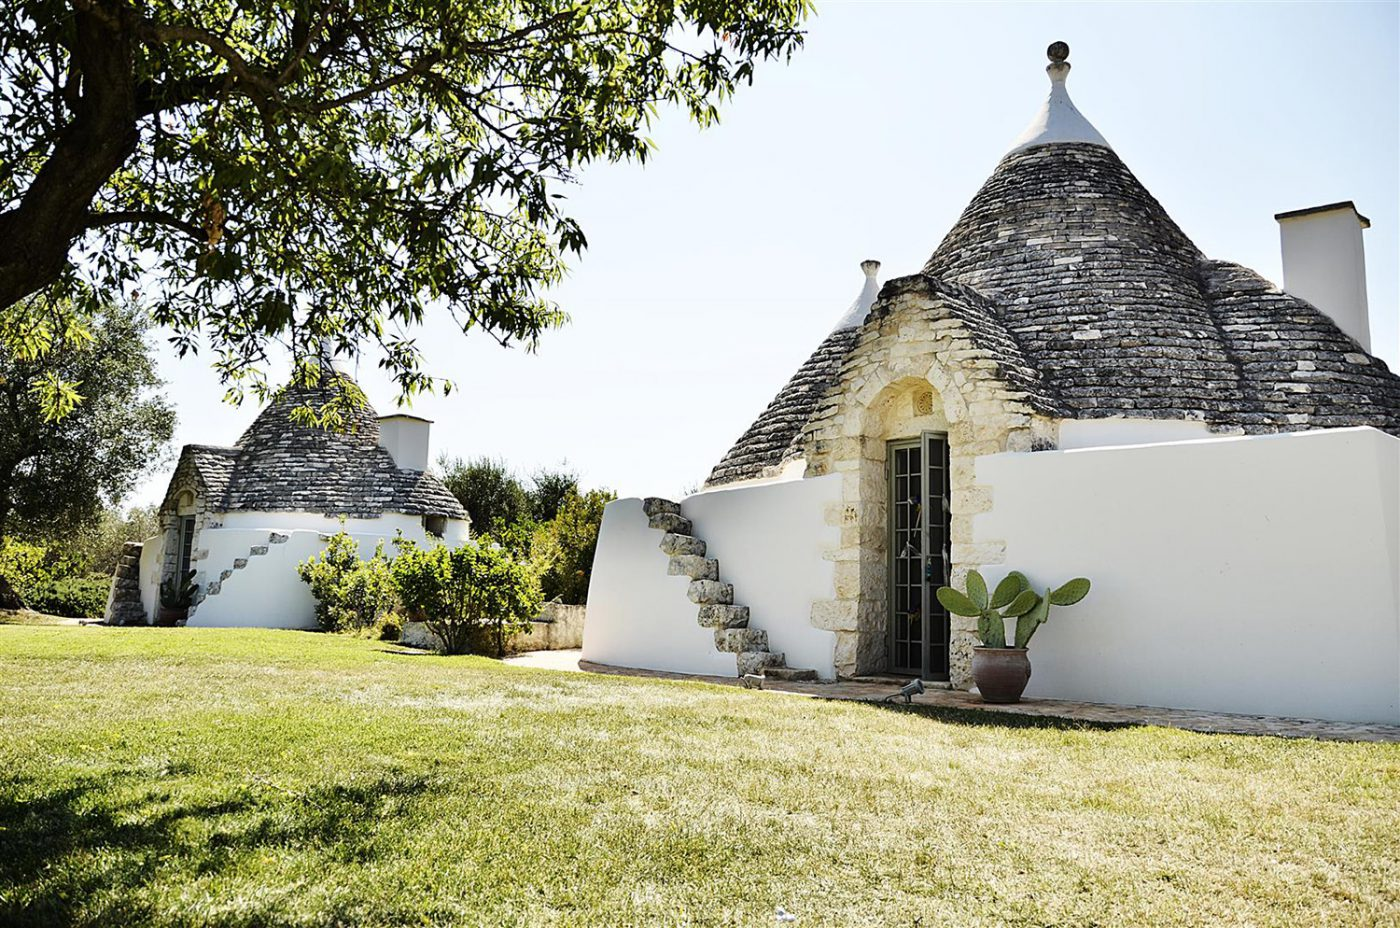 Trullo pugliese recovered